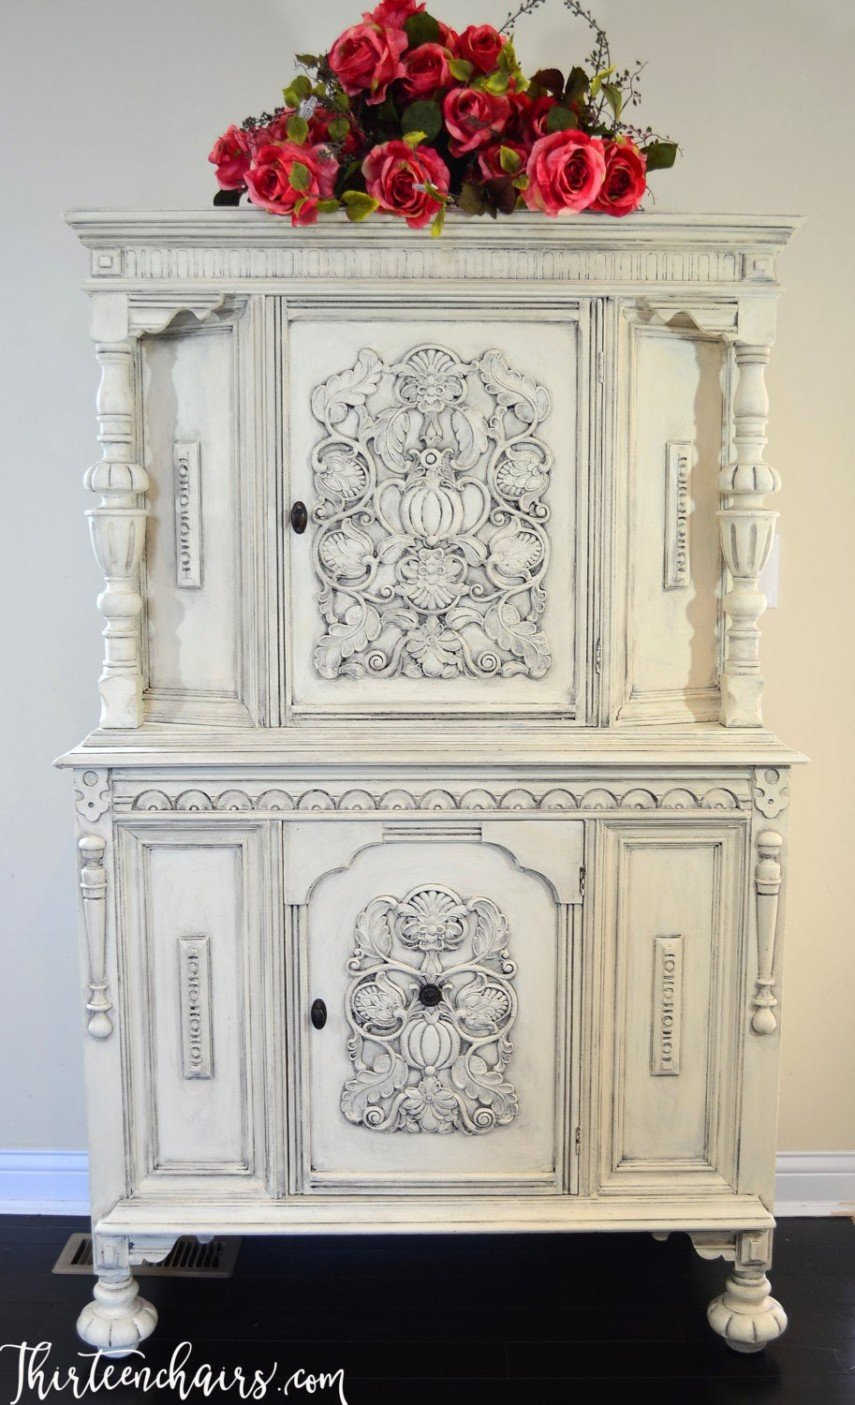 Annie Sloan white chalk paint was used on this beautiful piece